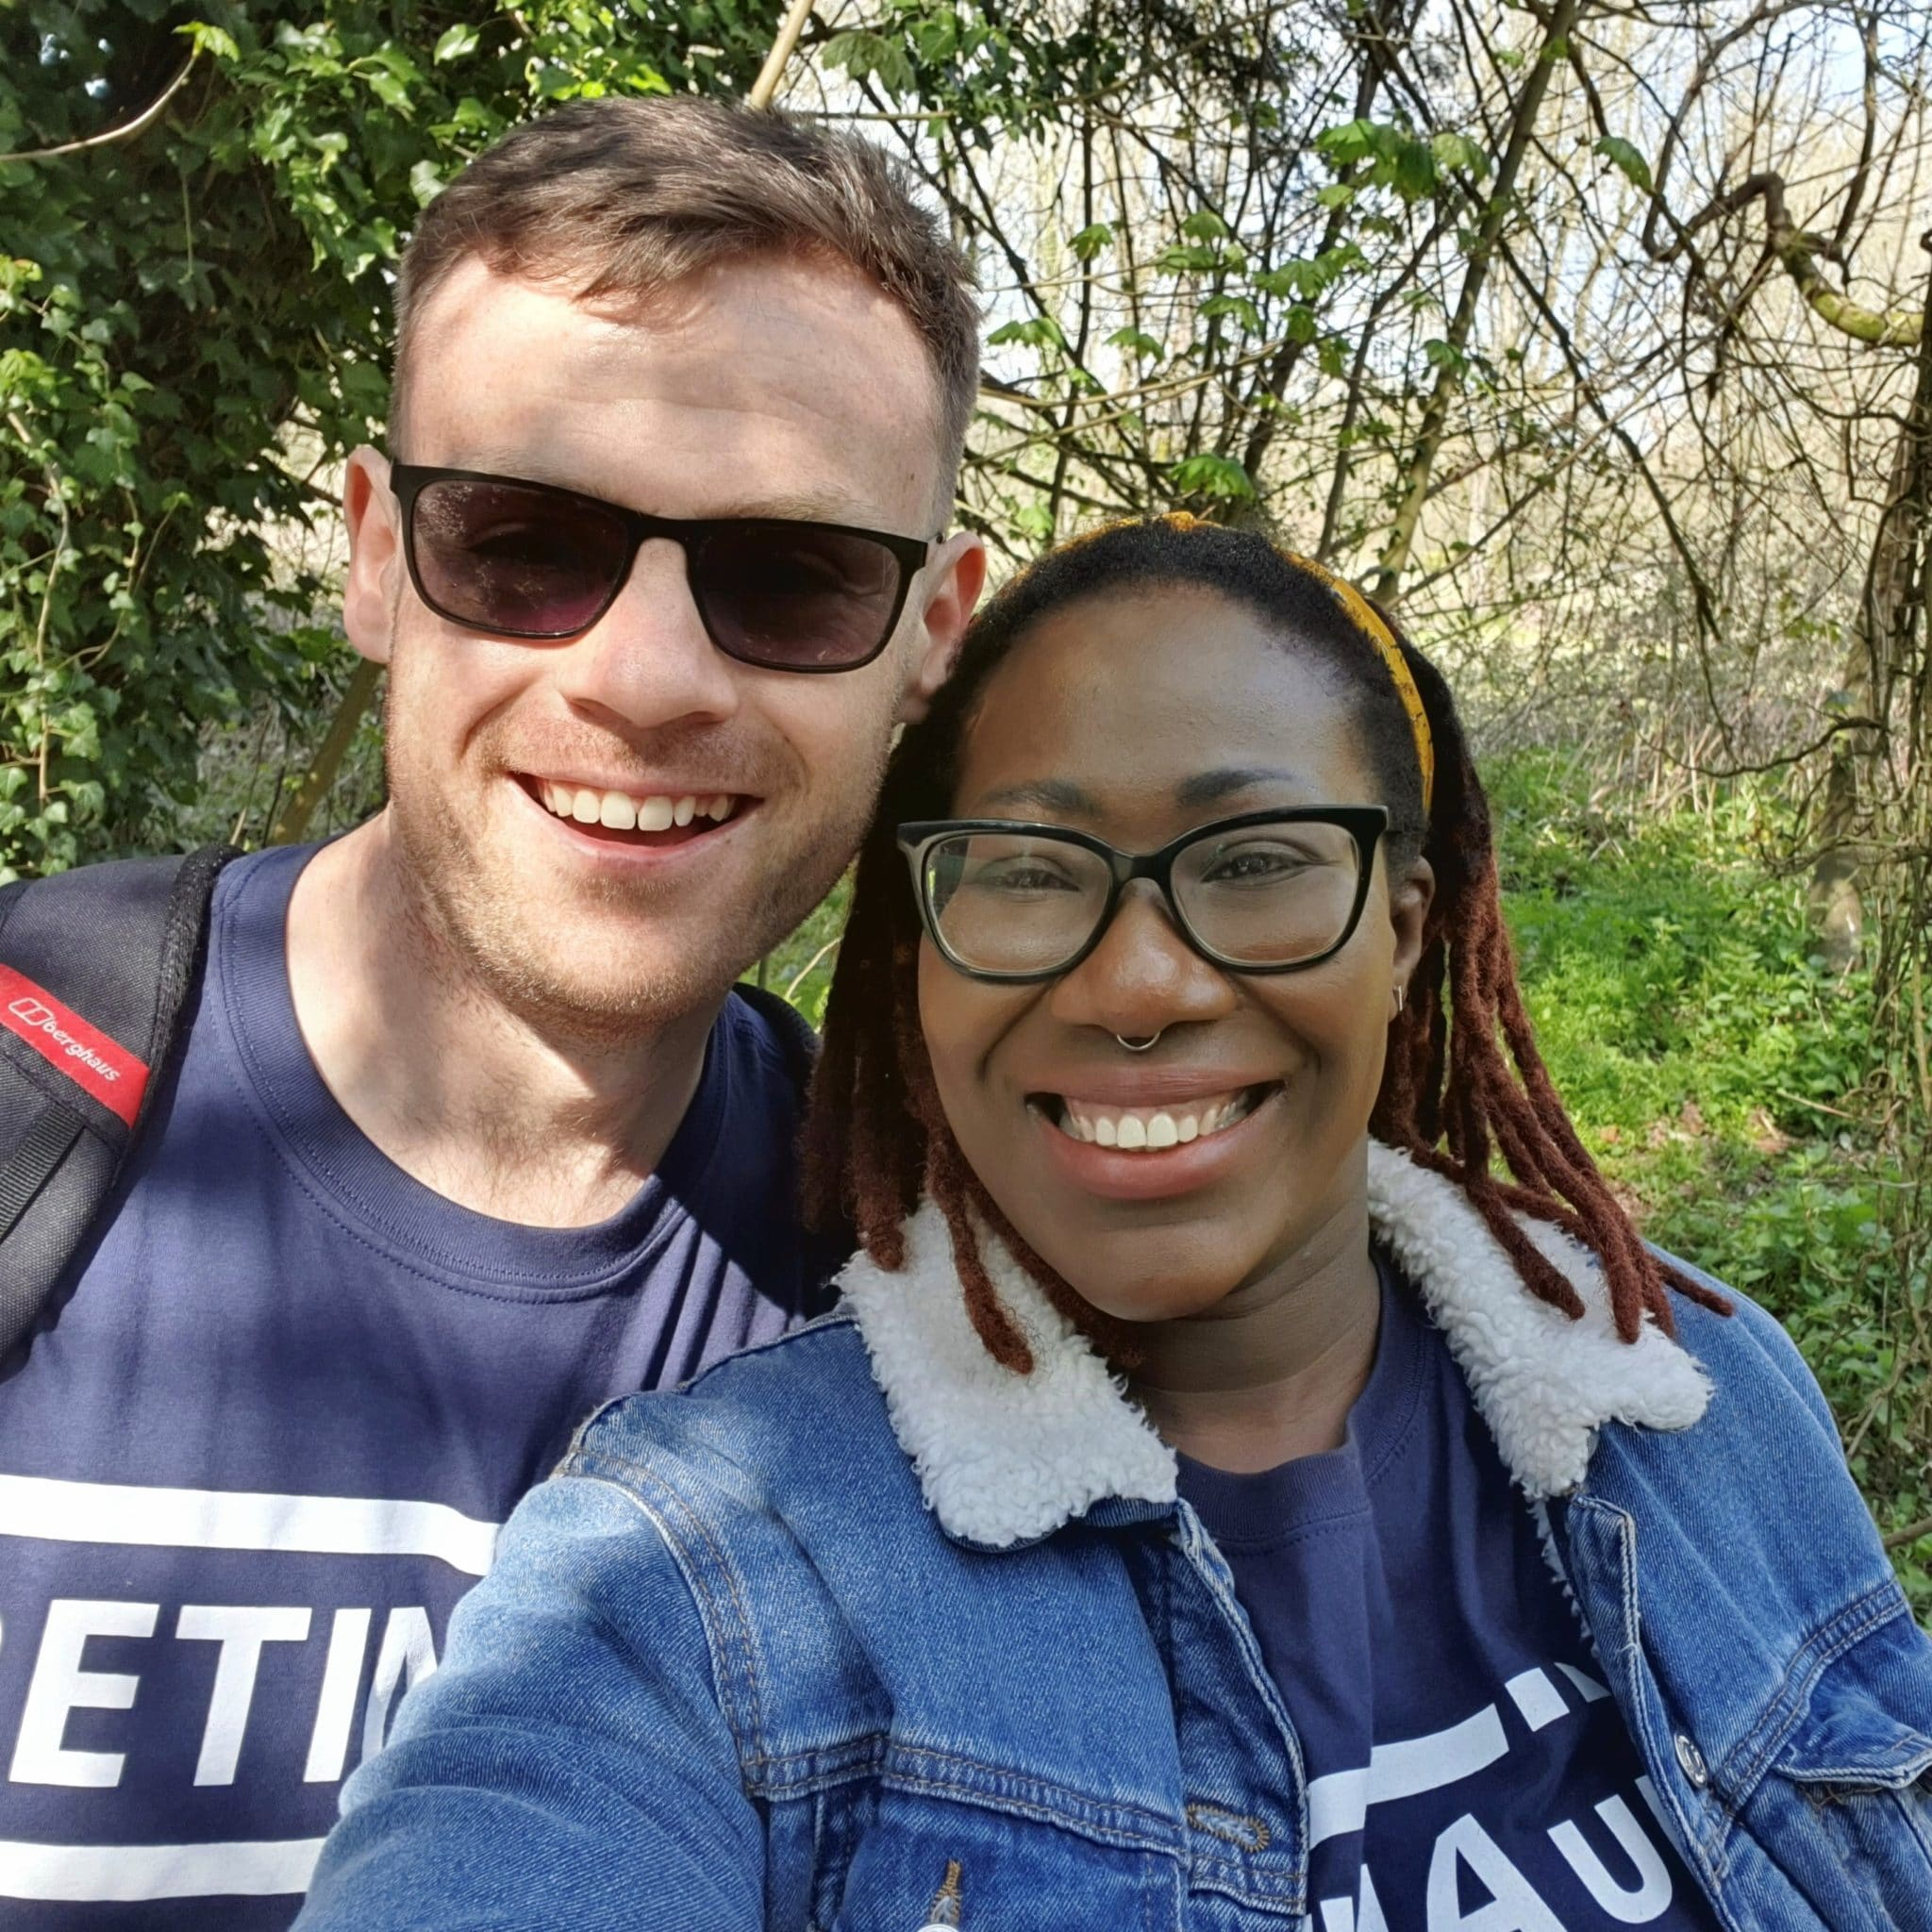 Image shows two supporters stood next to each other smiling in front of a hedgerow. Both are wearing blue Retina UK t-shirts.